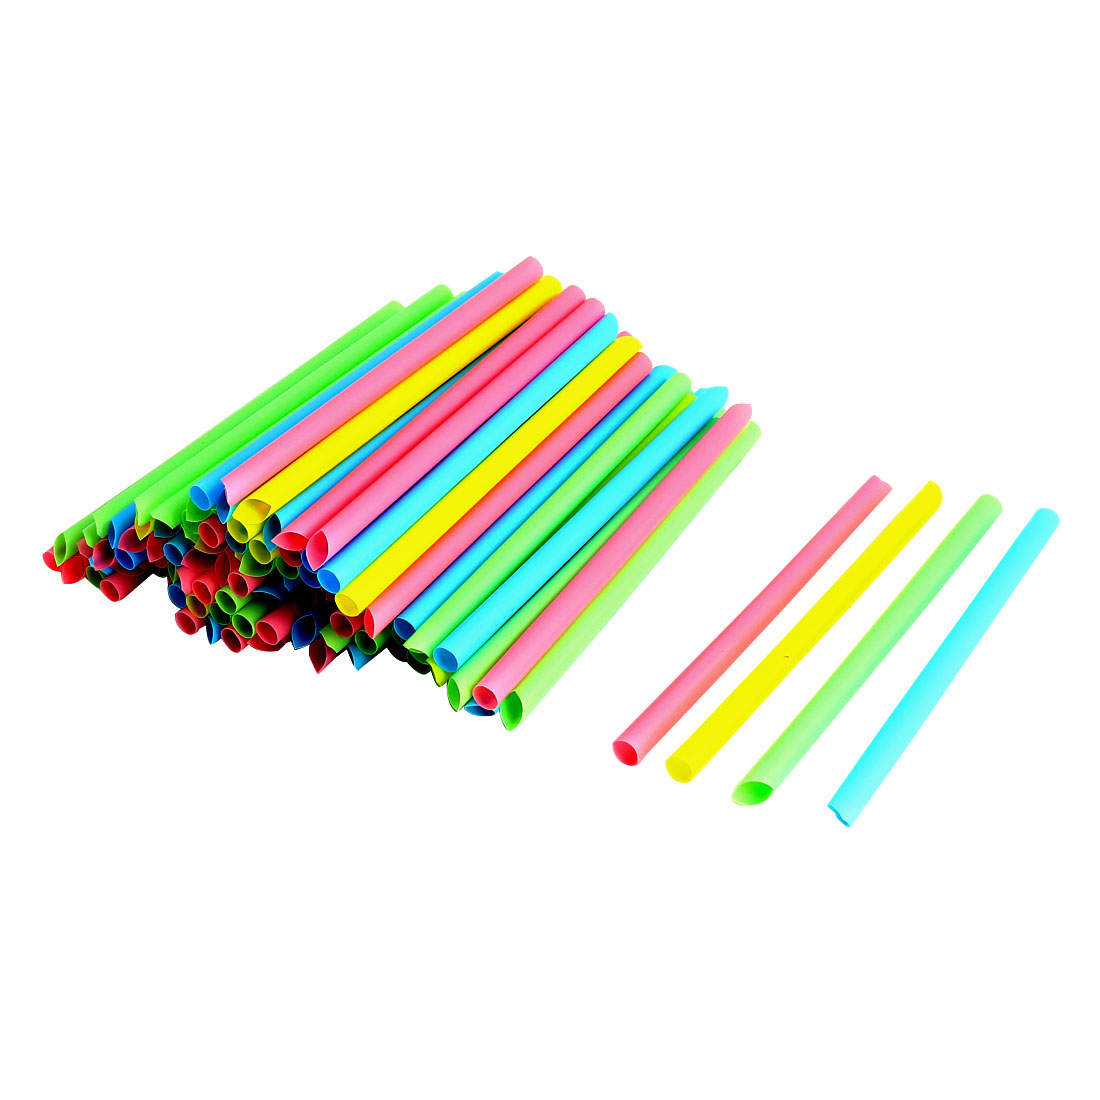 100pcs/Pack, 2 Pack, Milkshake Smoothie Slush Disposable Cafe Party Drinking Straws Assorted Colors